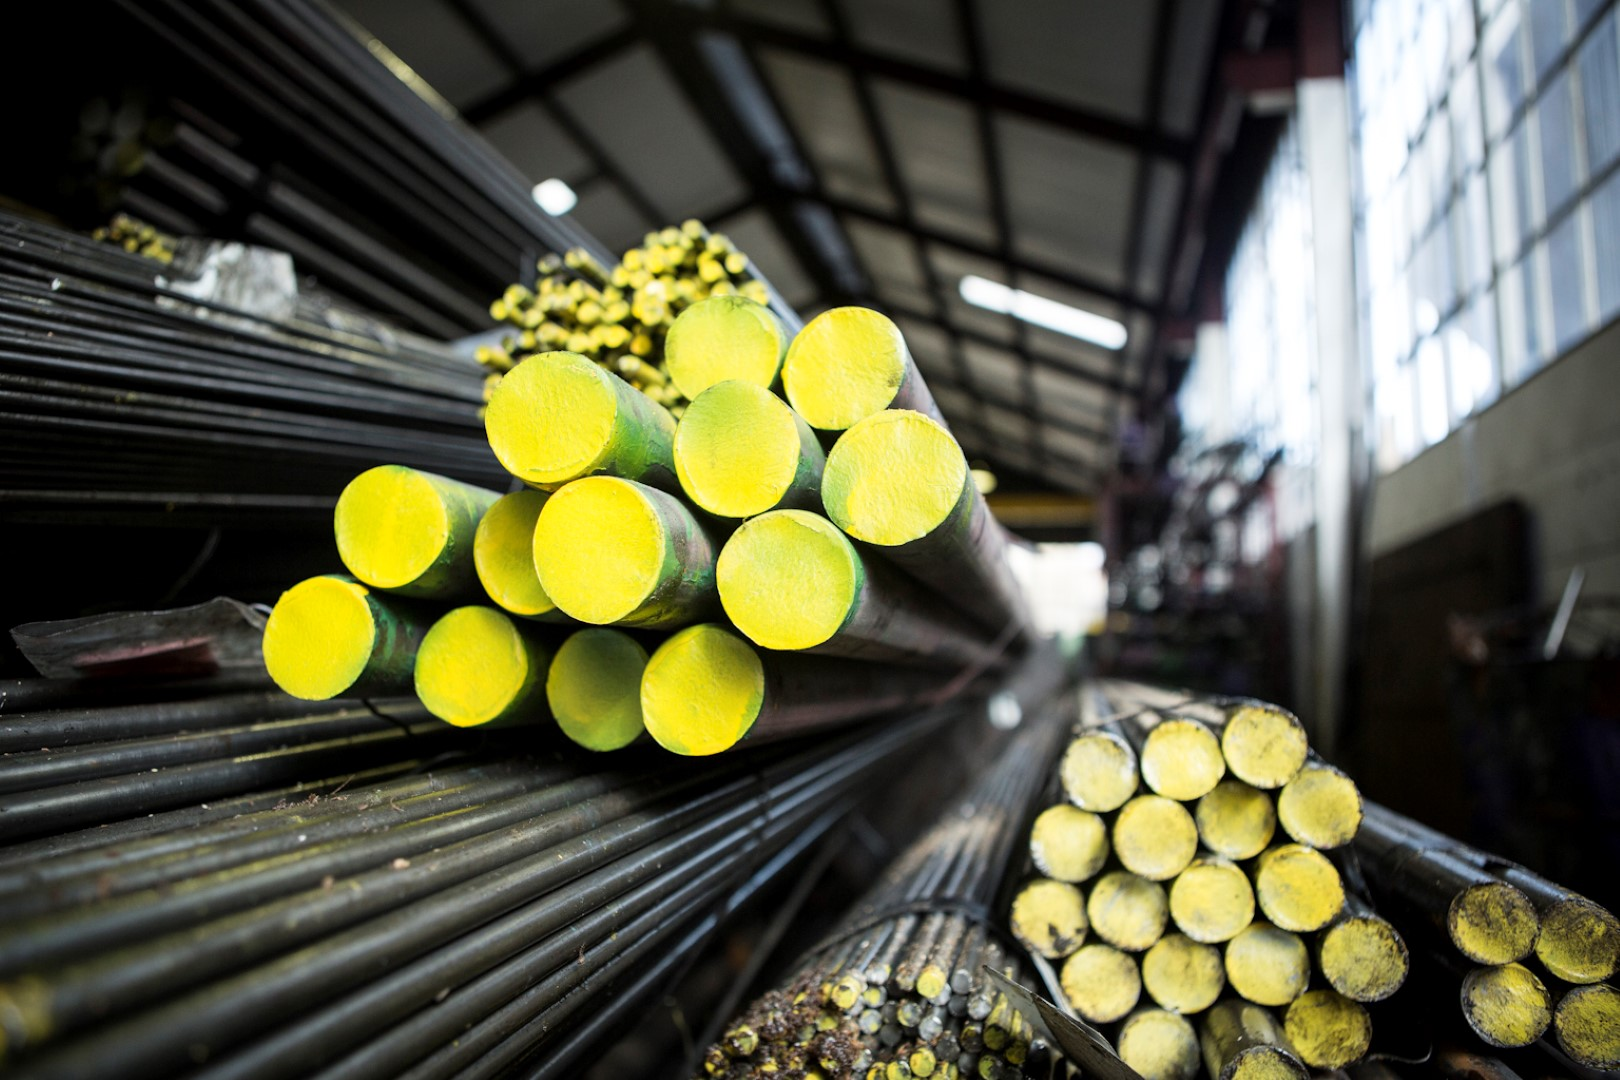 EN8 High tensile steel raw material used to make threaded products (painted yellow)